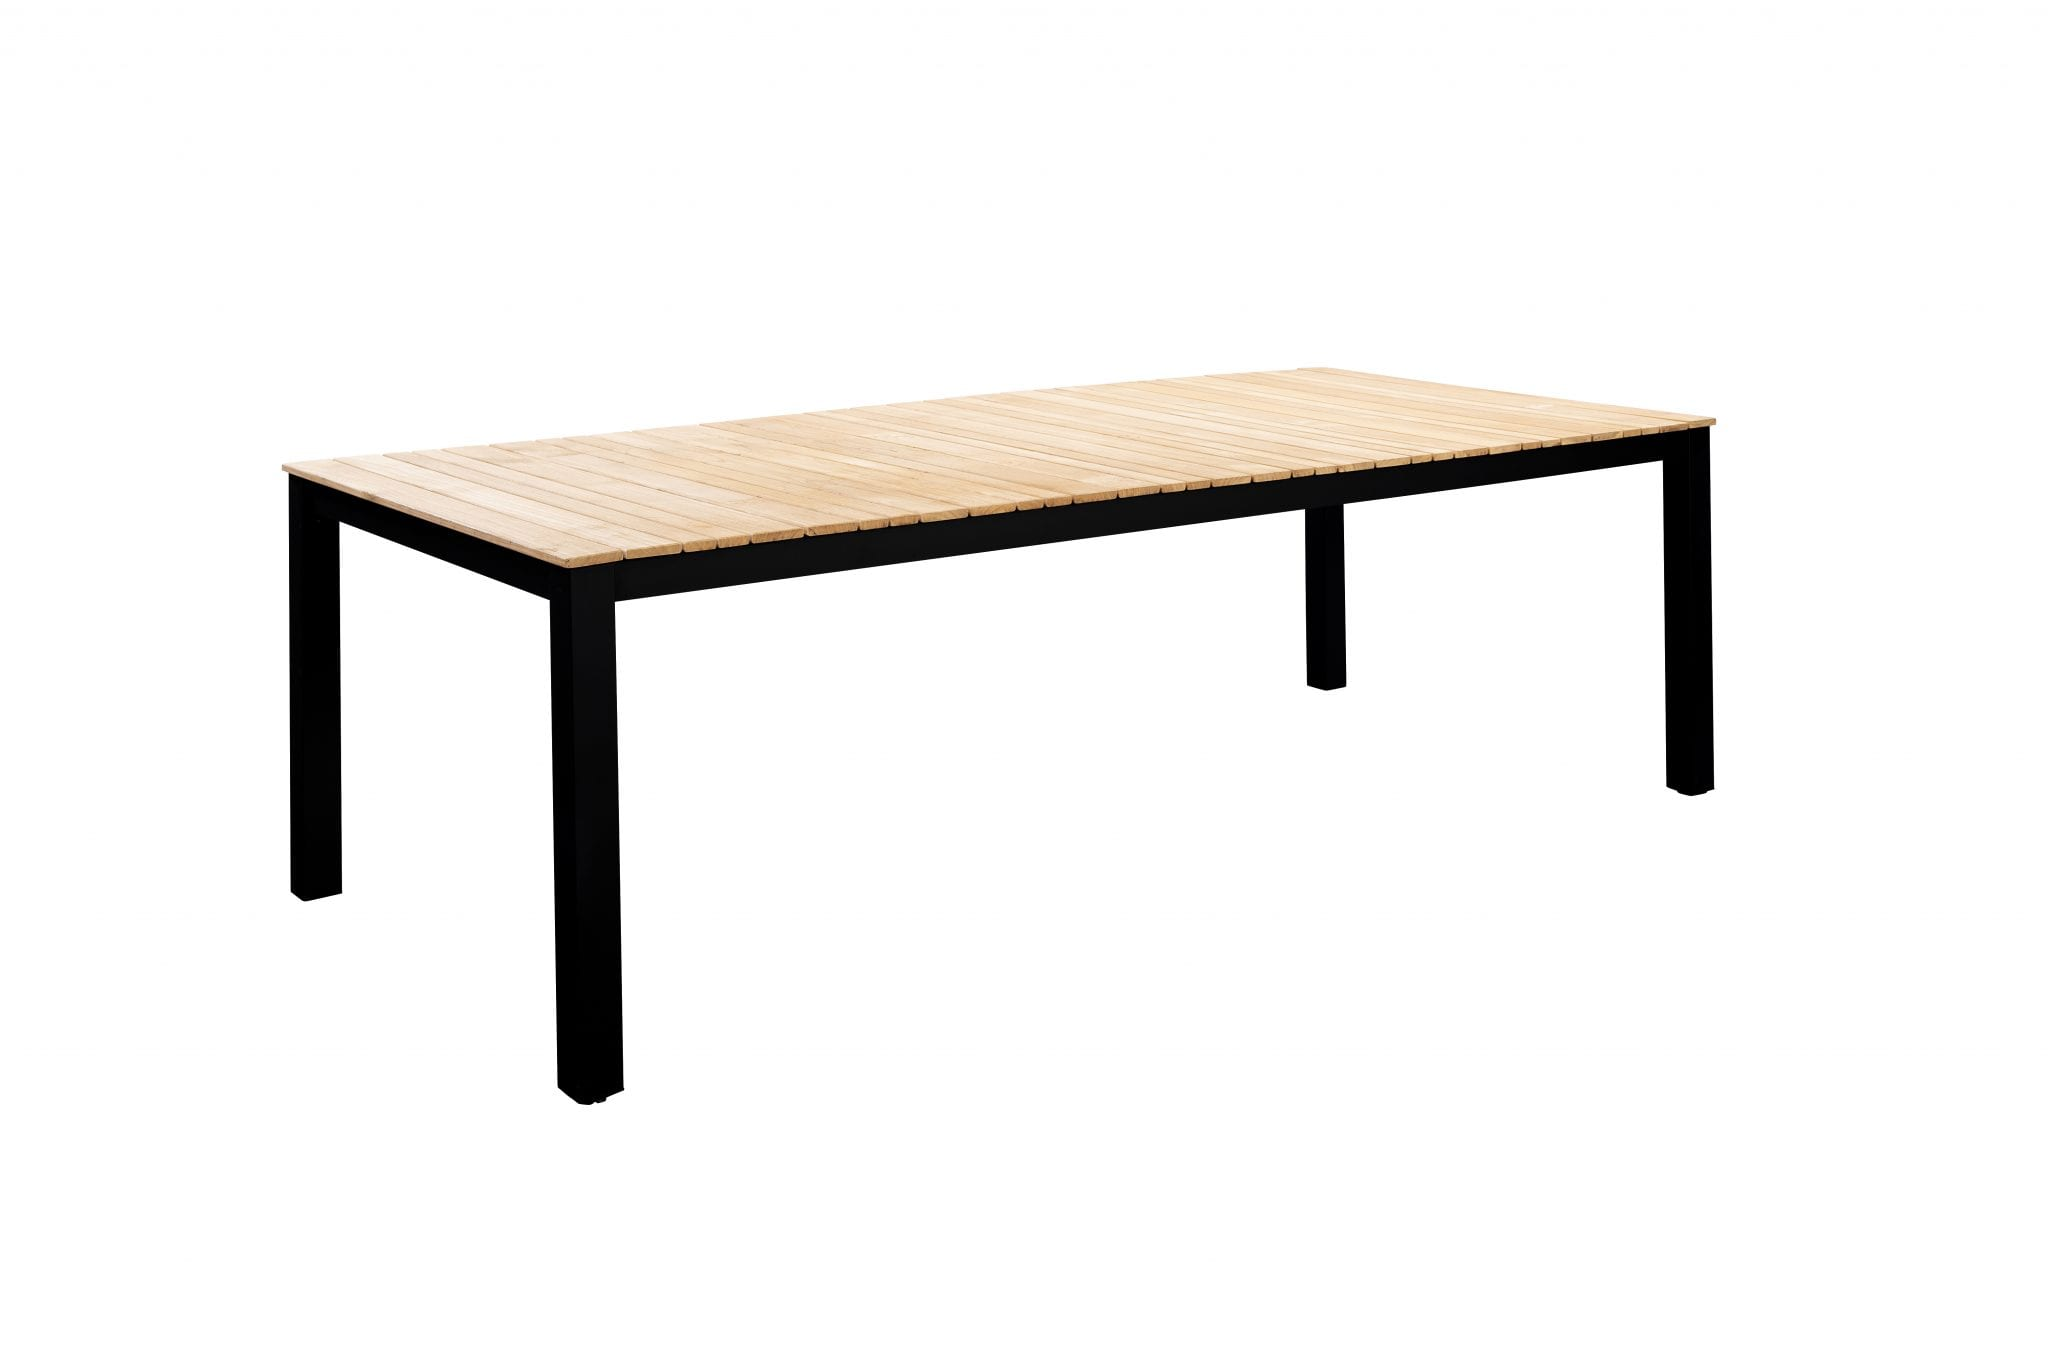 Arashi 200x100 dining table - black | Yoi Furniture